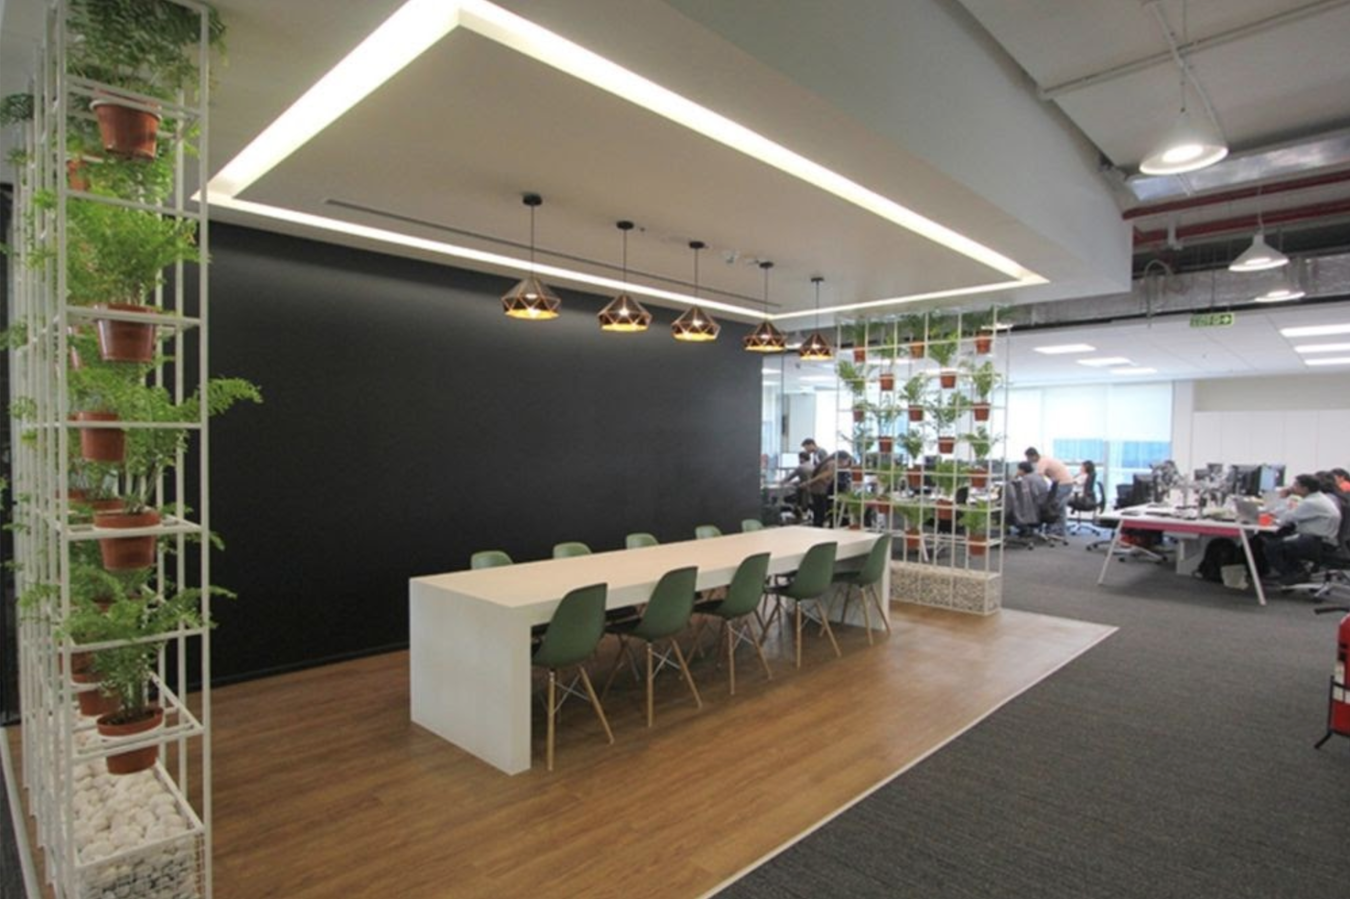 Plants can also boost moods and creativity in the office